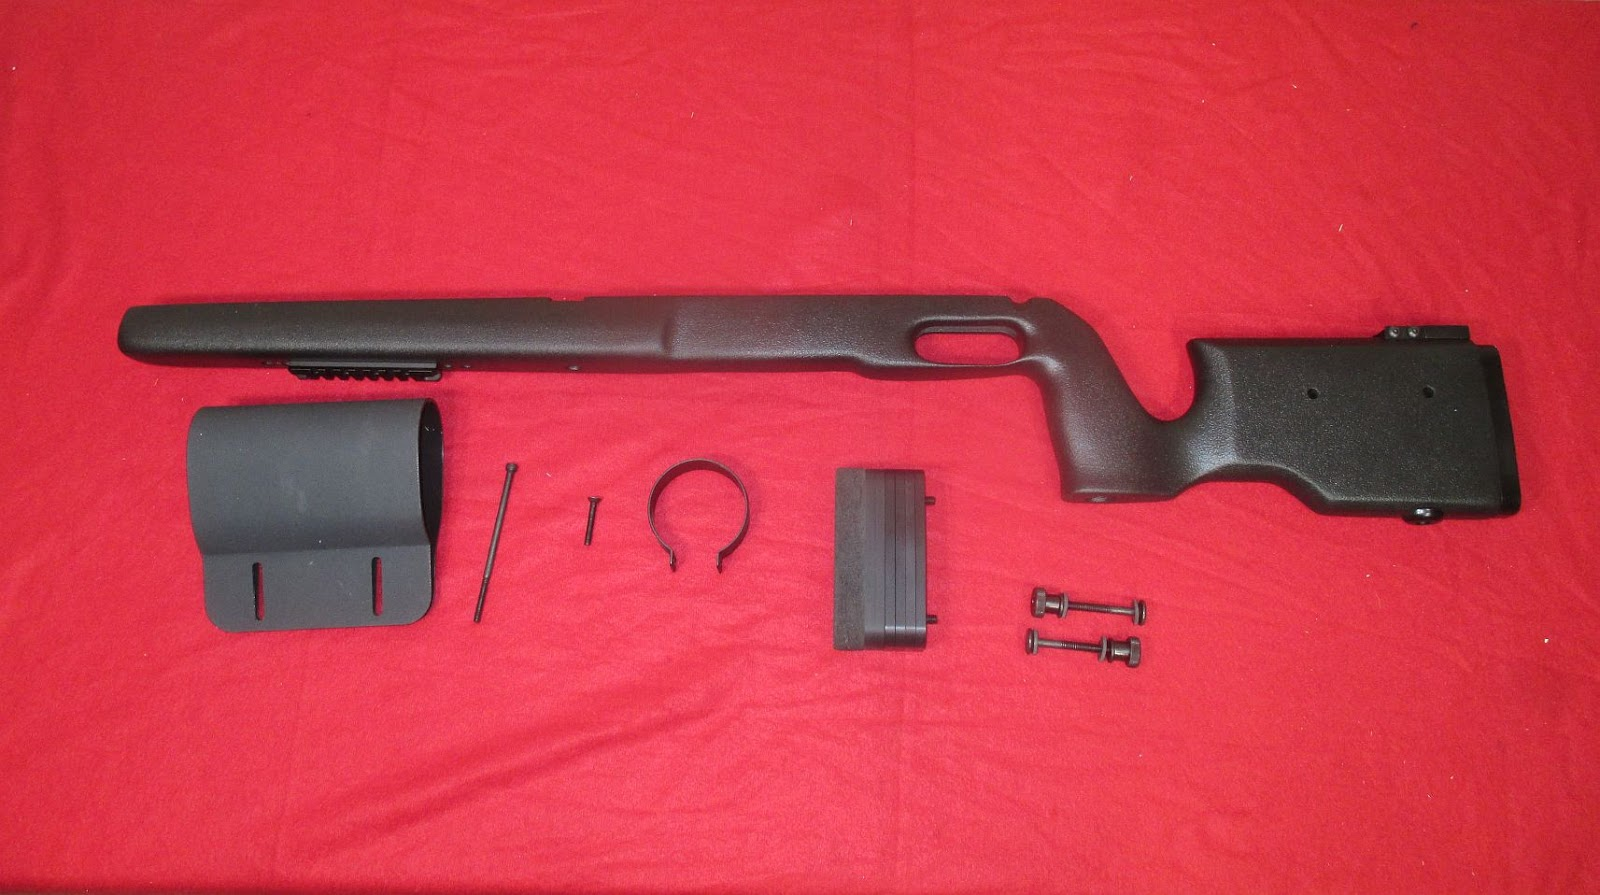 Tofazfou's HPA (high powered air gun) Expeditions